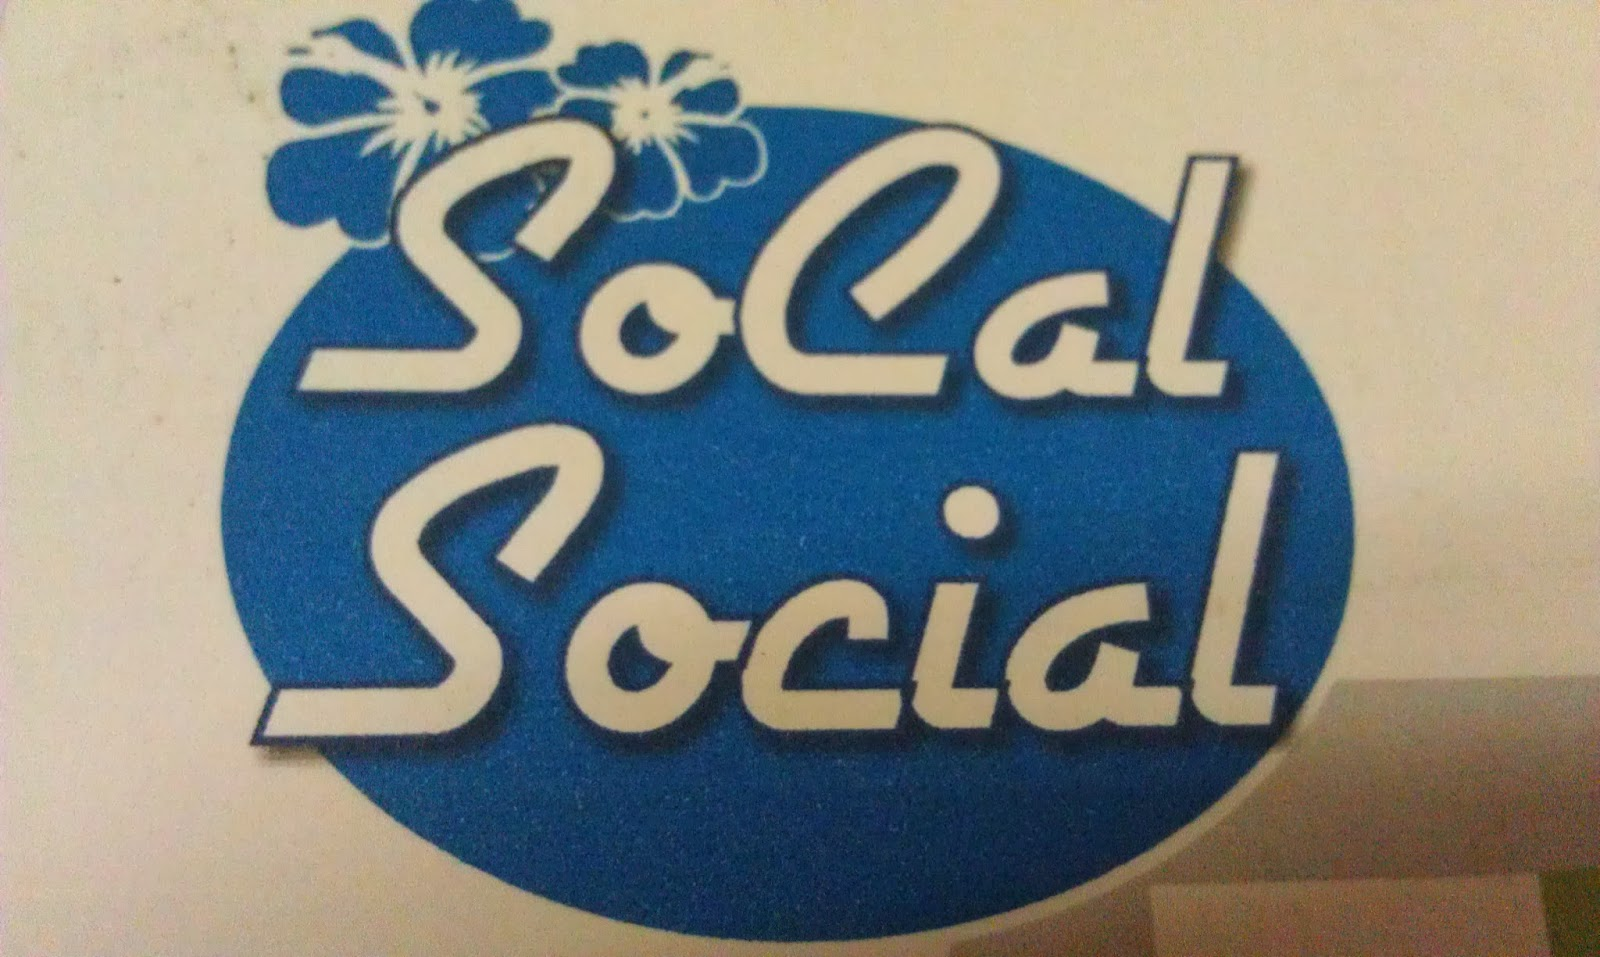 Created By Soul Socal Social Part 1